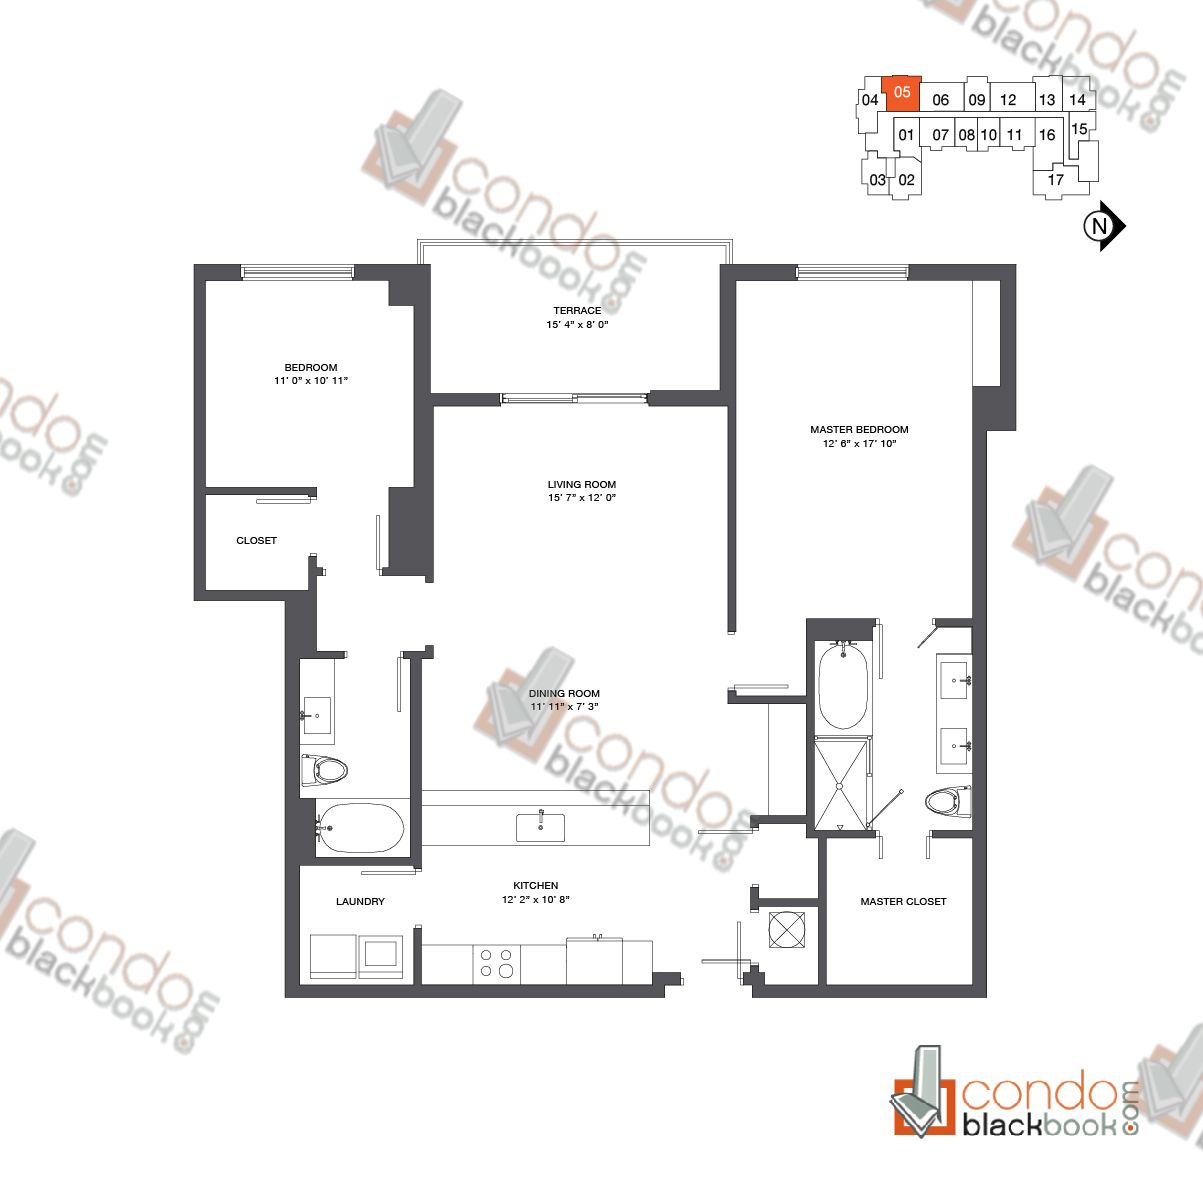 Floor plan for Nine at Mary Brickell Village Brickell Miami, model Residence 12-33_05, line 05, 2/2 bedrooms, 1,390 sq ft